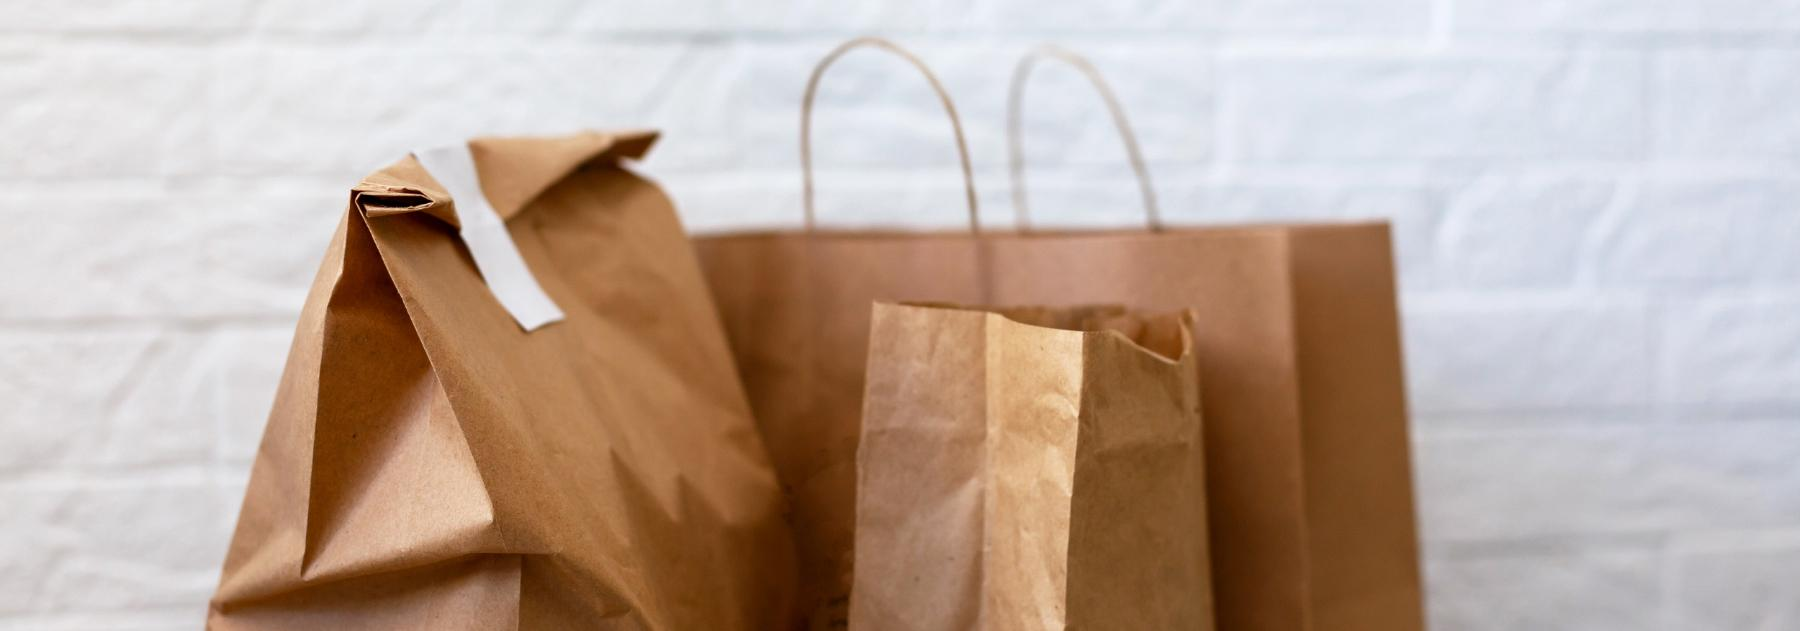 Brown paper bags, food to go